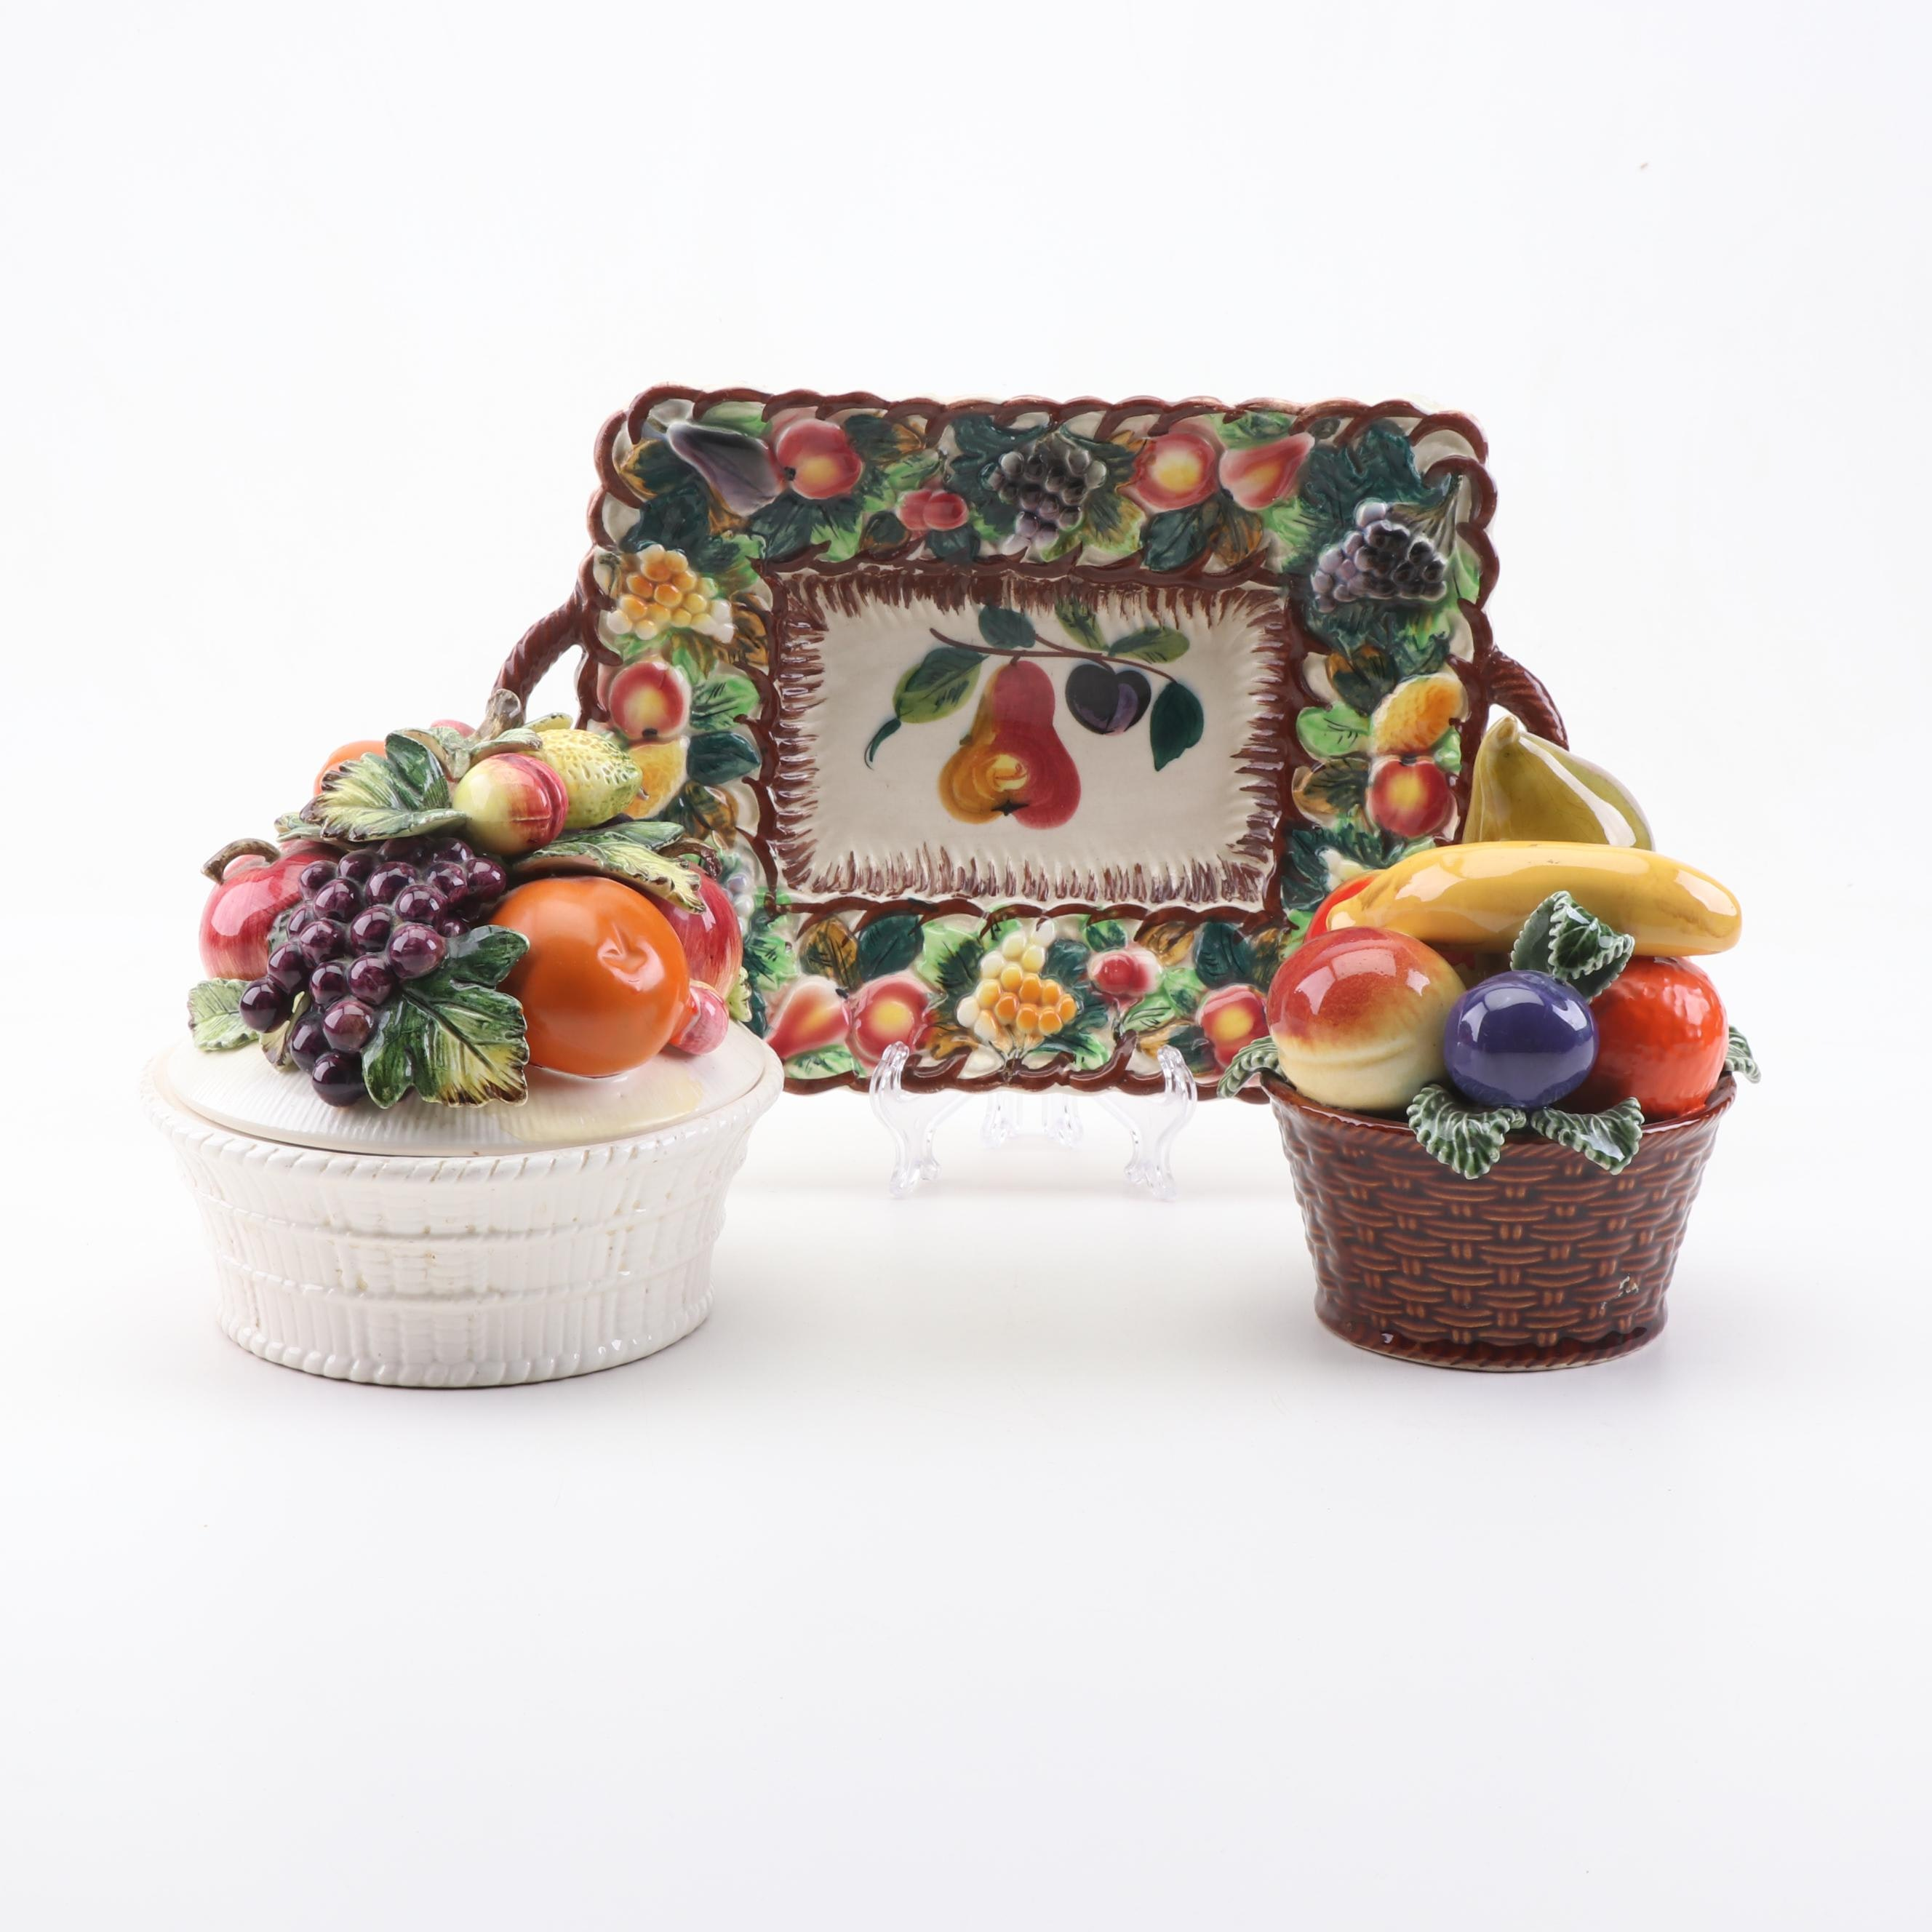 Assortment of Ceramic Fruit Trays and Containers